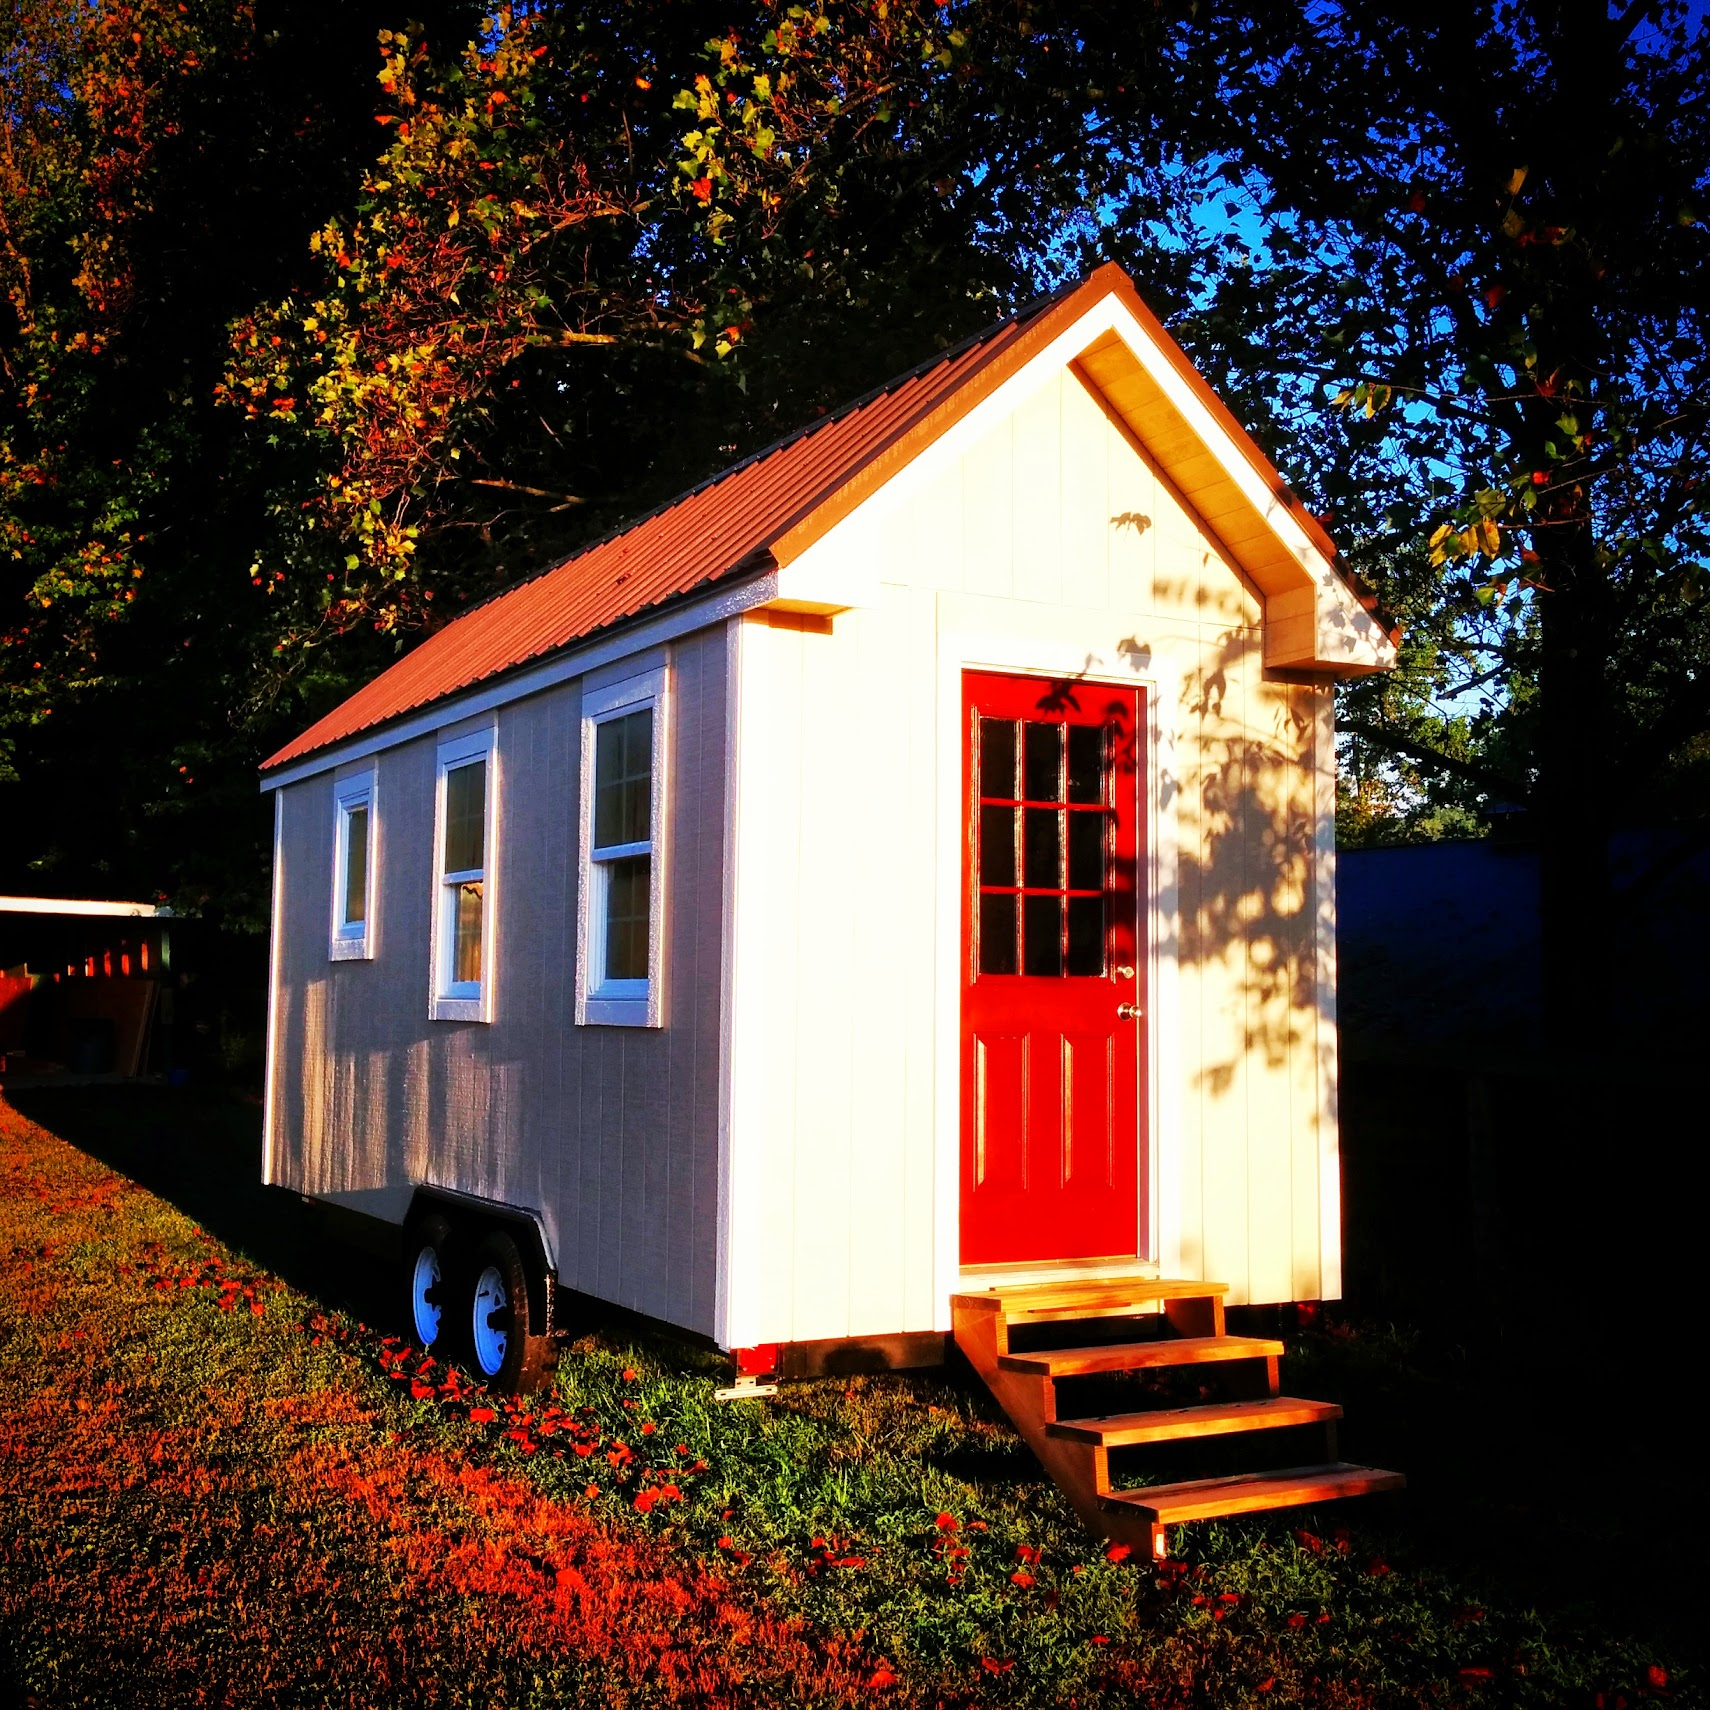 One of the new  Tiny Home Builders  models, a tiny home that can be built for less than $10K, plans coming soon!